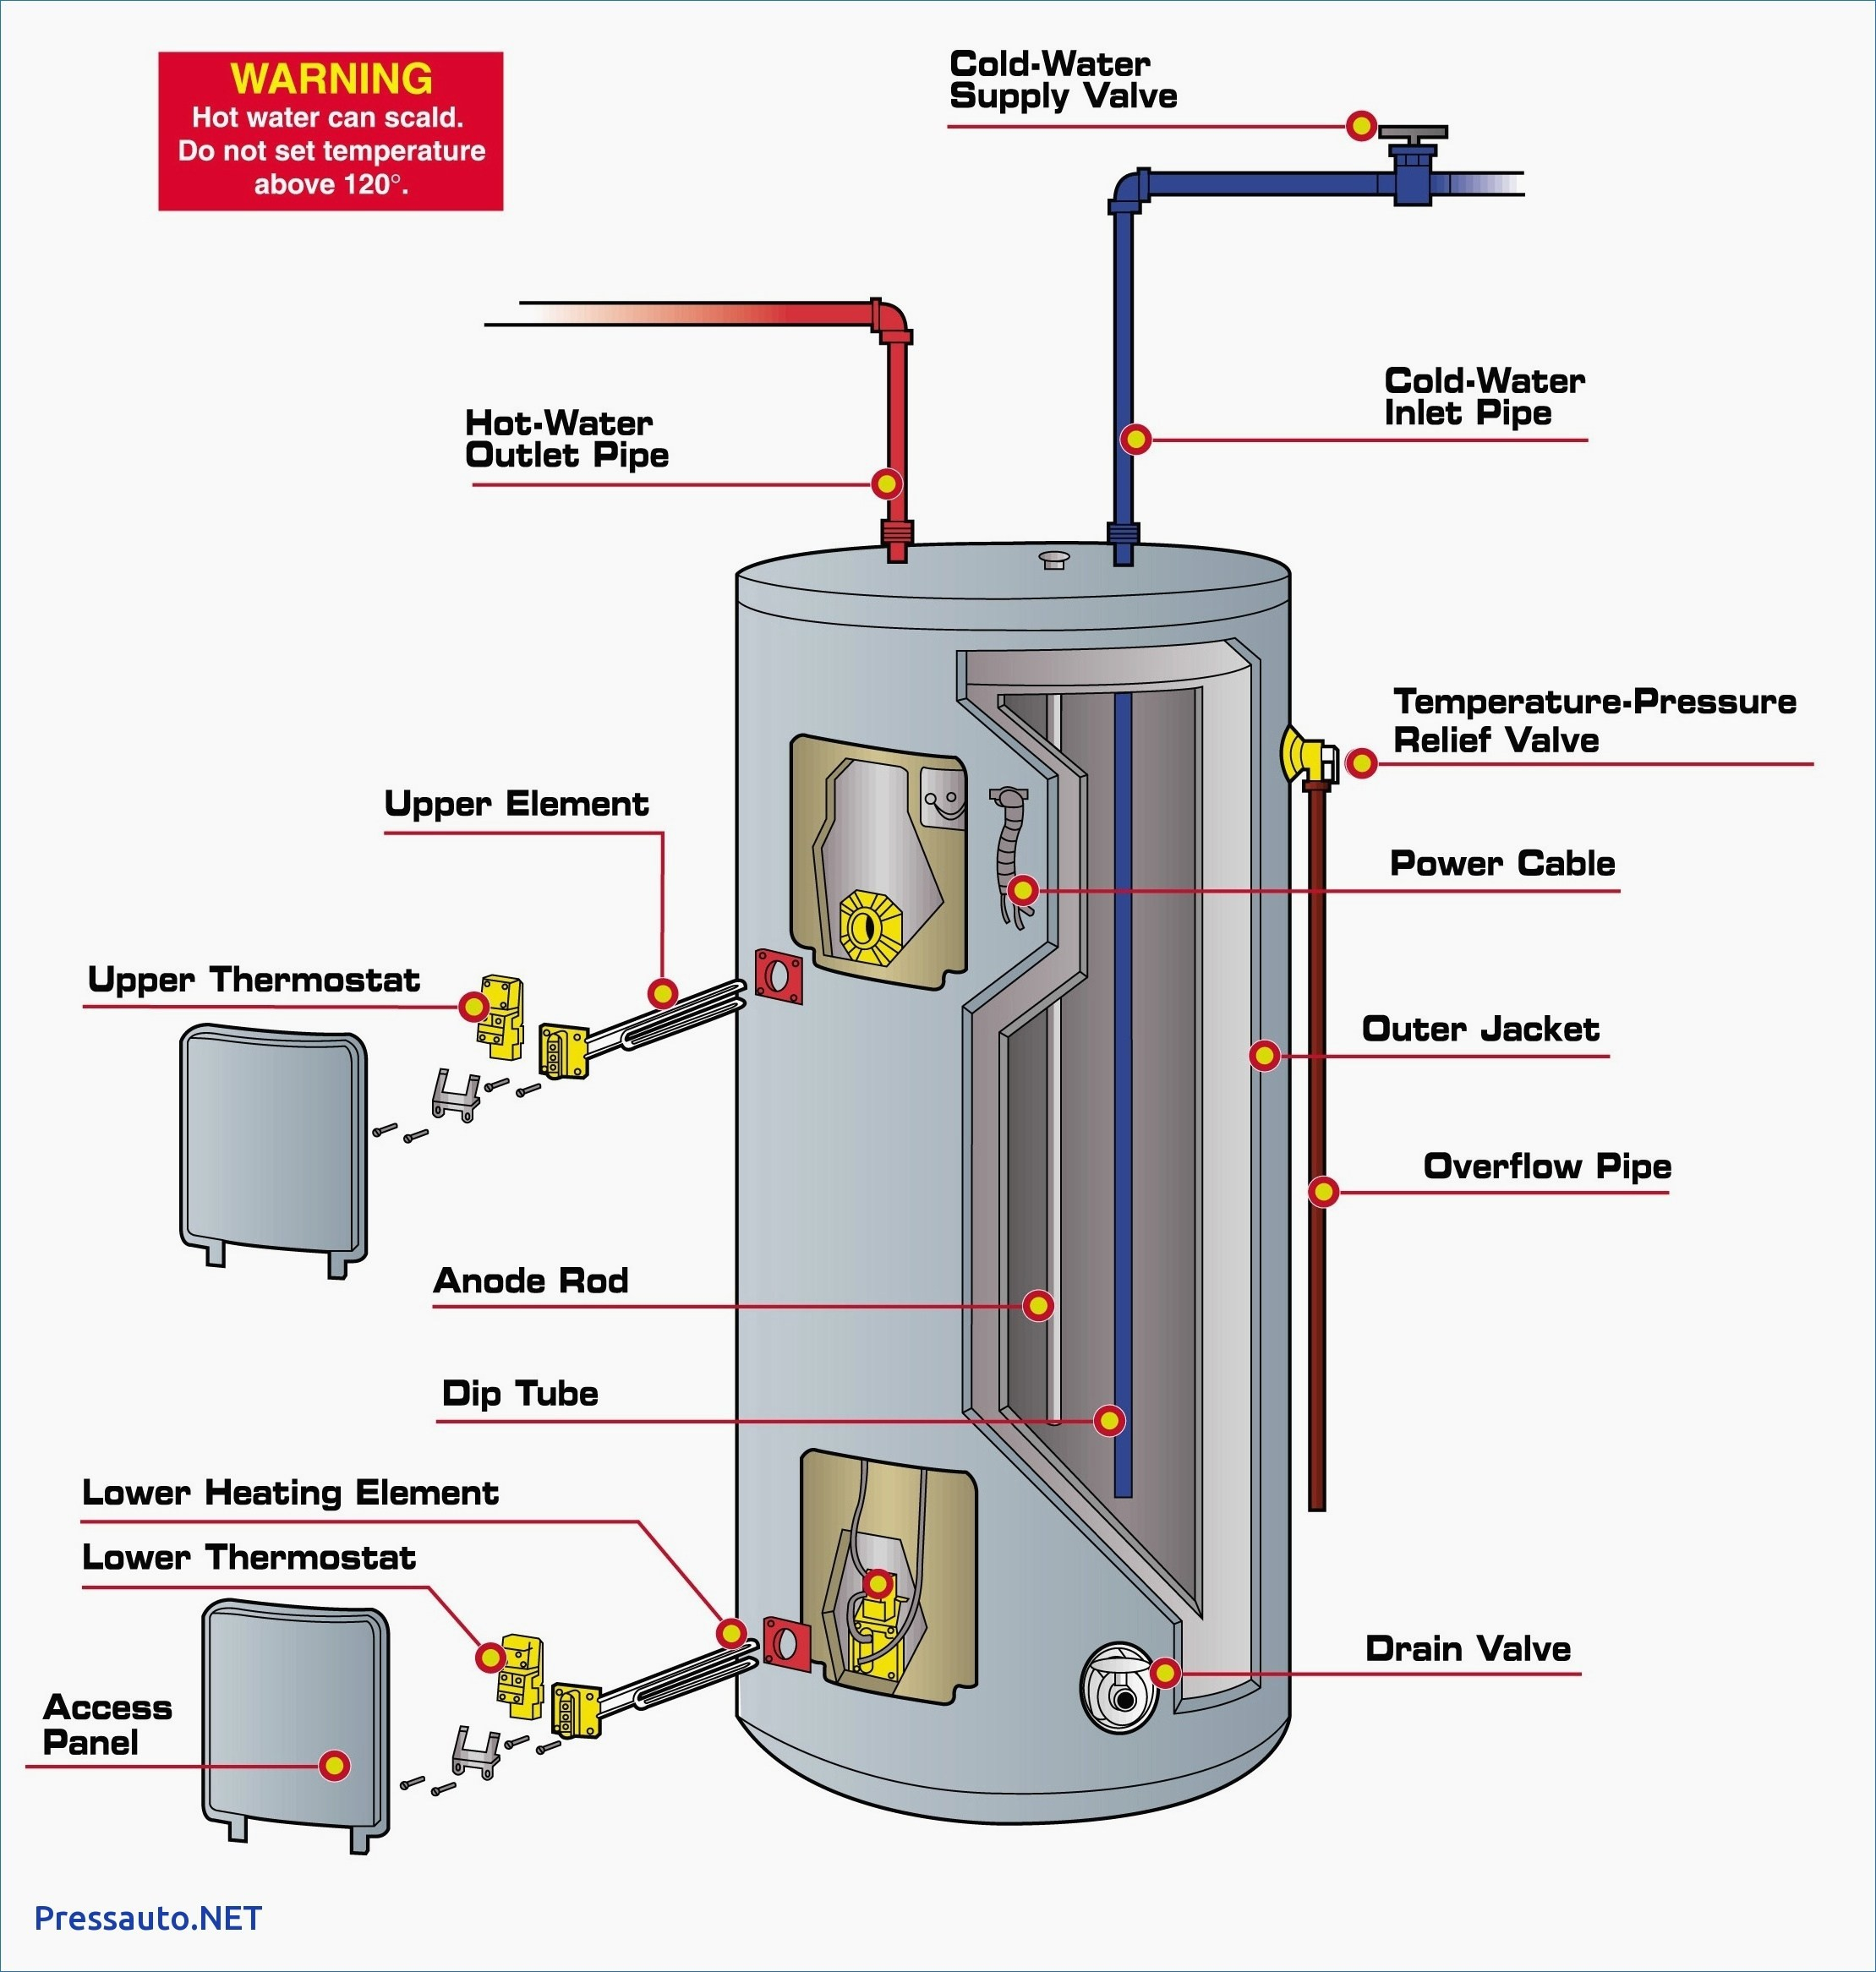 electric water heater wiring diagram Collection-Wiring Diagram Electric Water Heater Fresh New Hot Water Heater Wiring Diagram Diagram 1-c